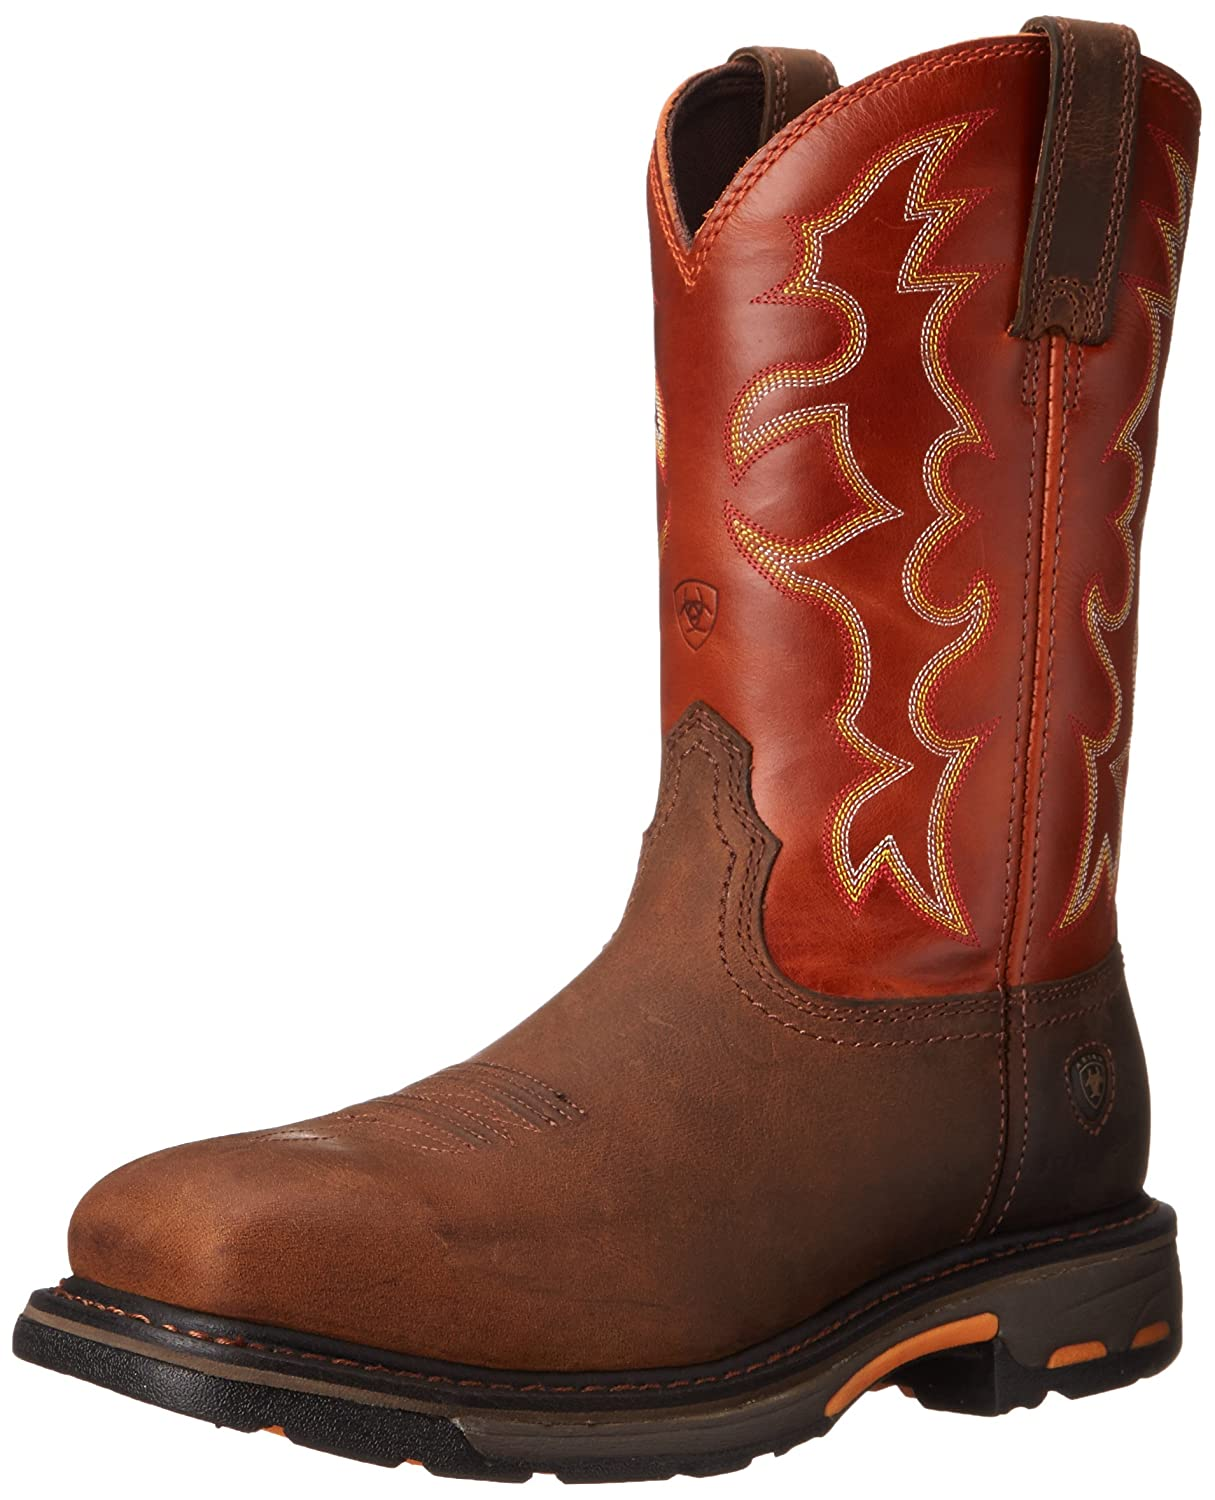 Earth Brick ARIAT Men's Workhog Steel Toe Work Boot